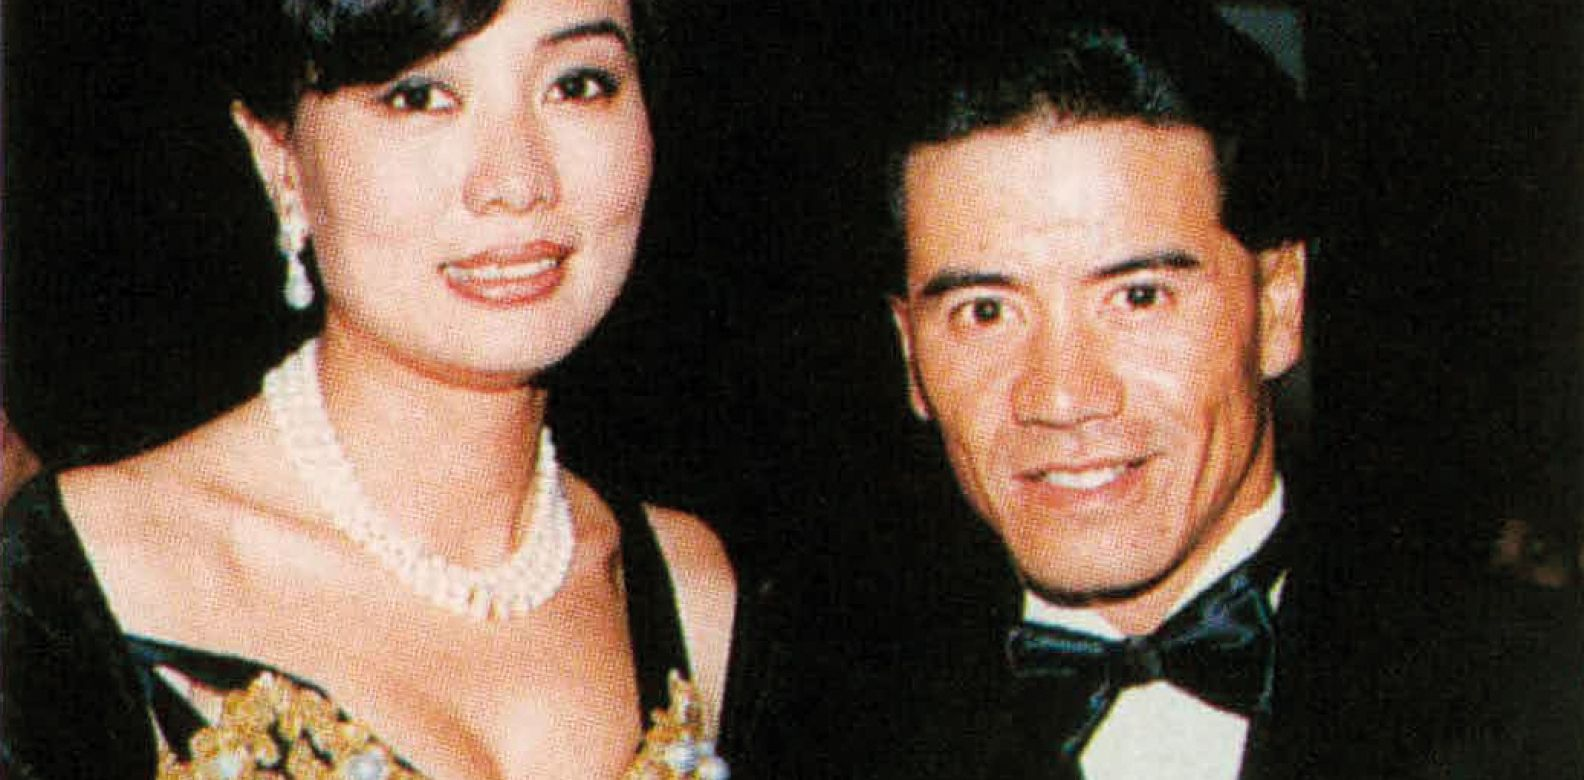 Pauline and Tony Cruz at the Aids Ball (1998)